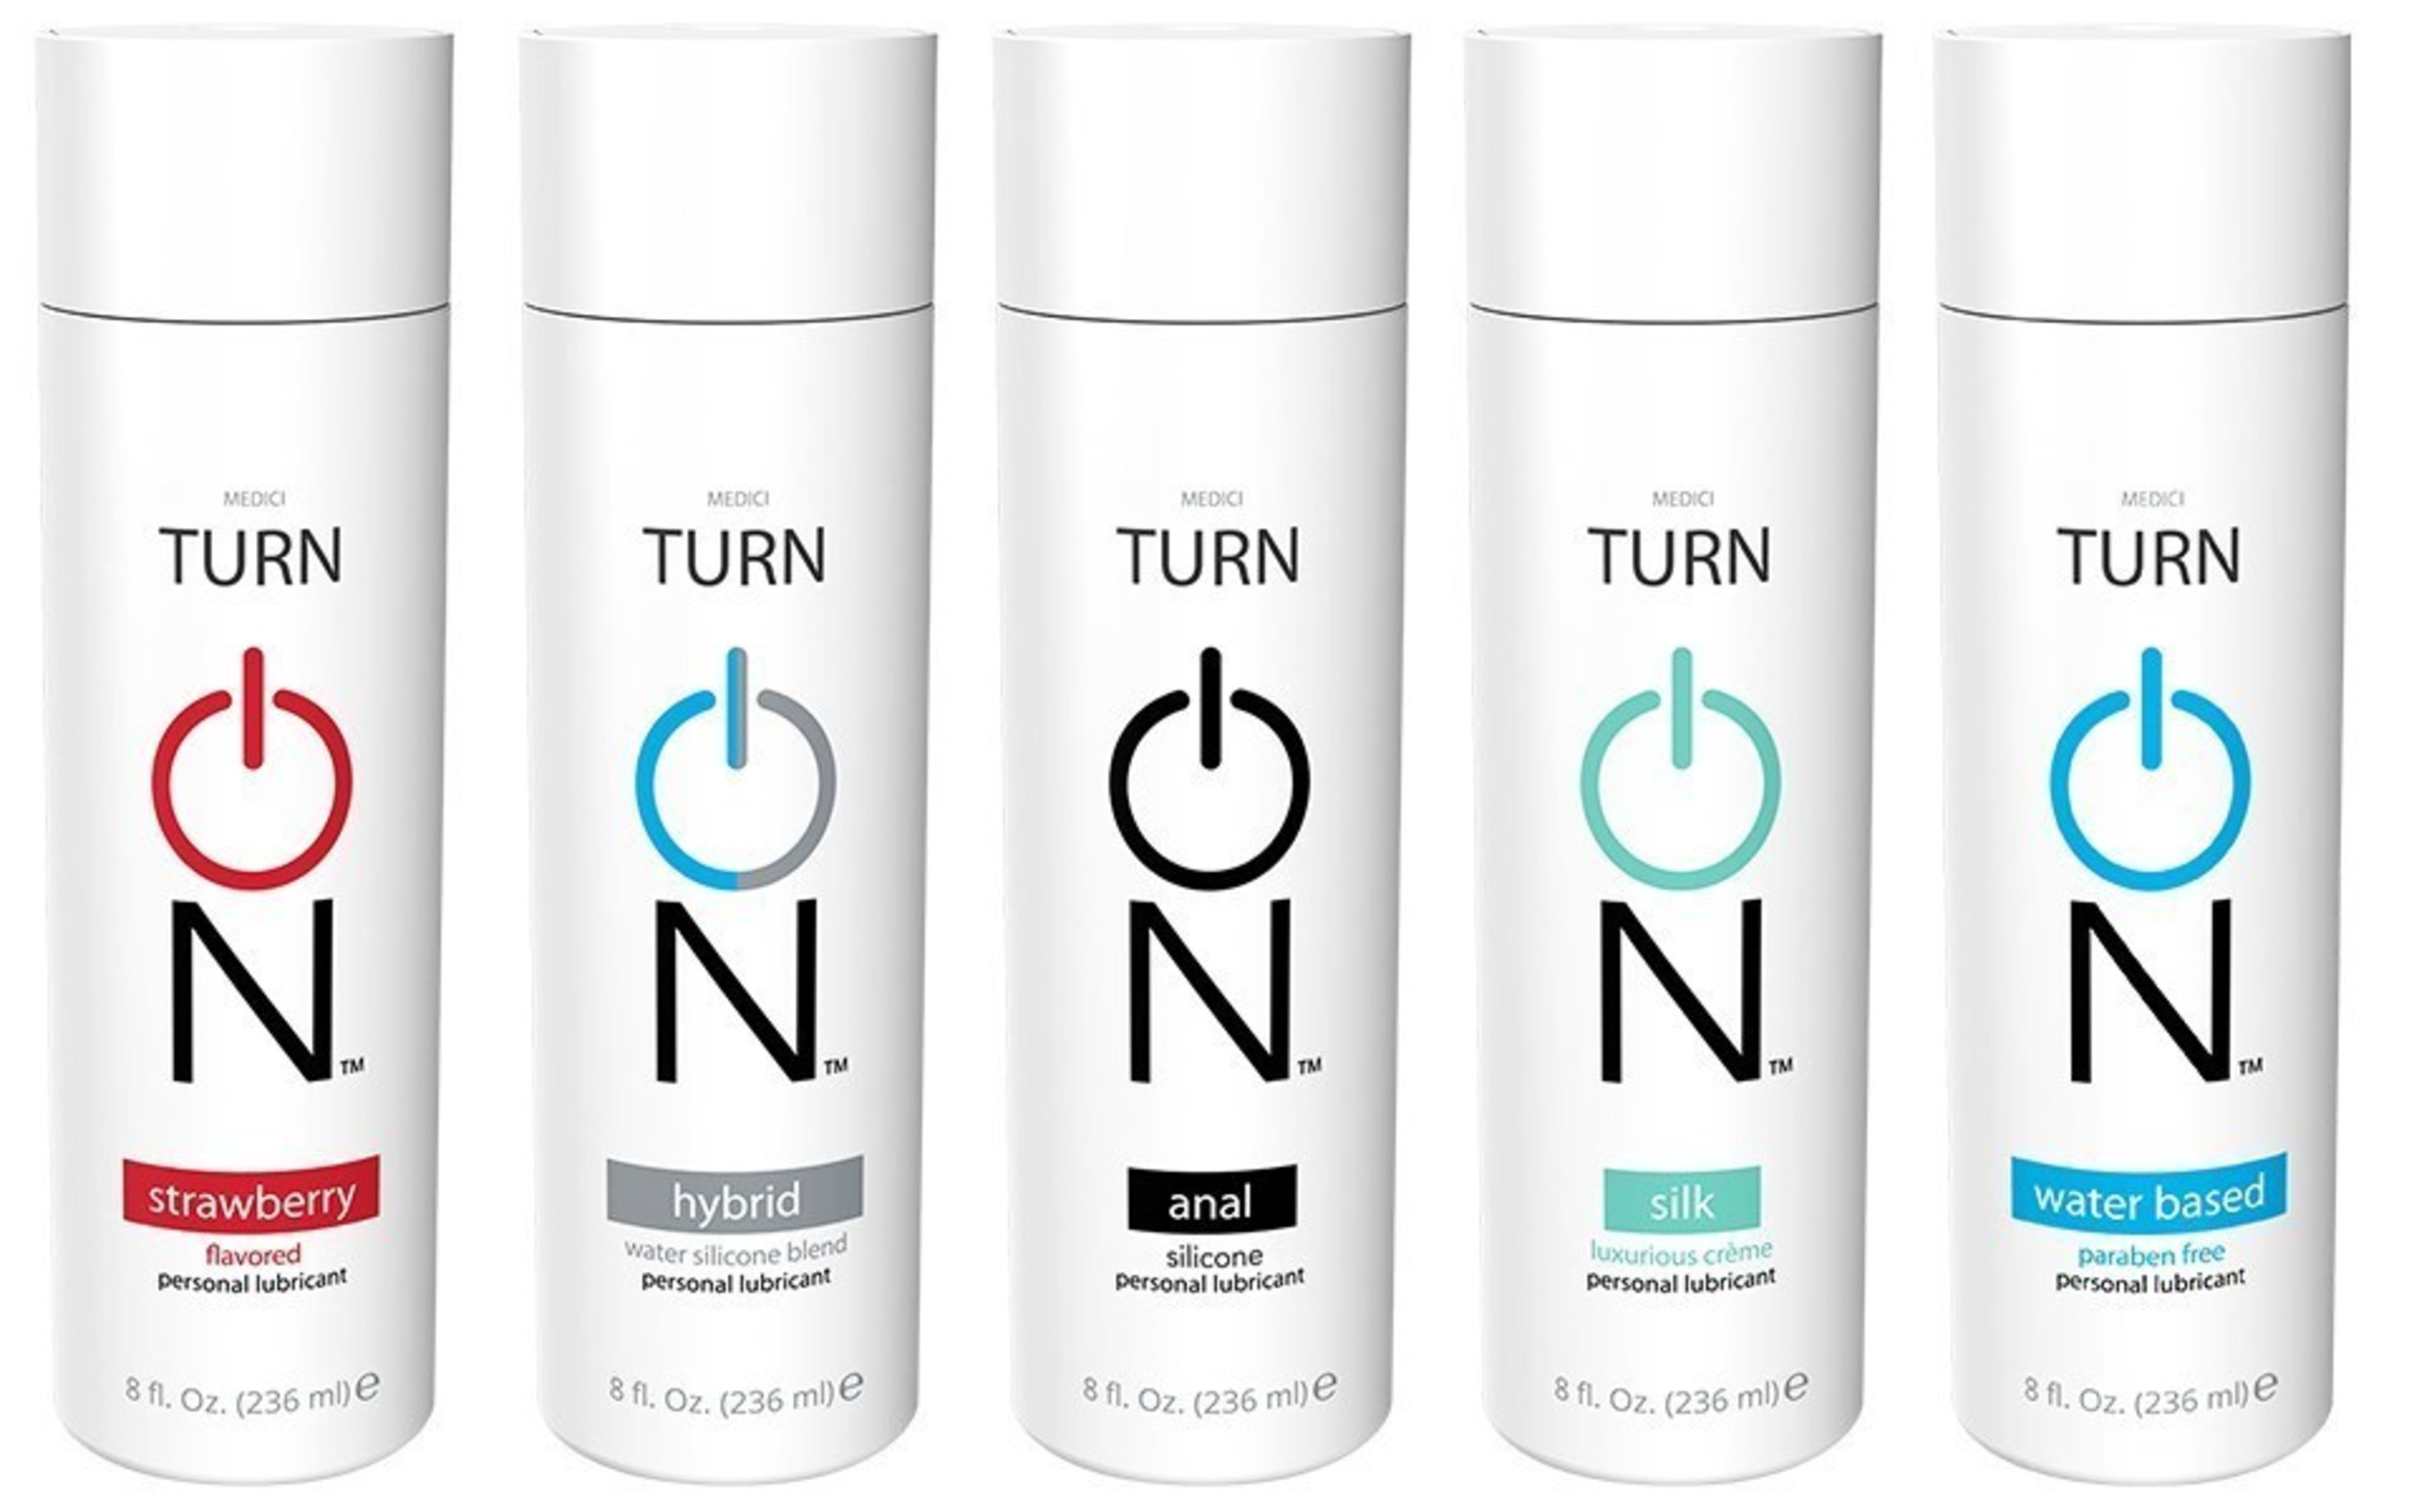 Medici Online Group, LLC has launched an exciting new line of personal lubricant products to the marketplace